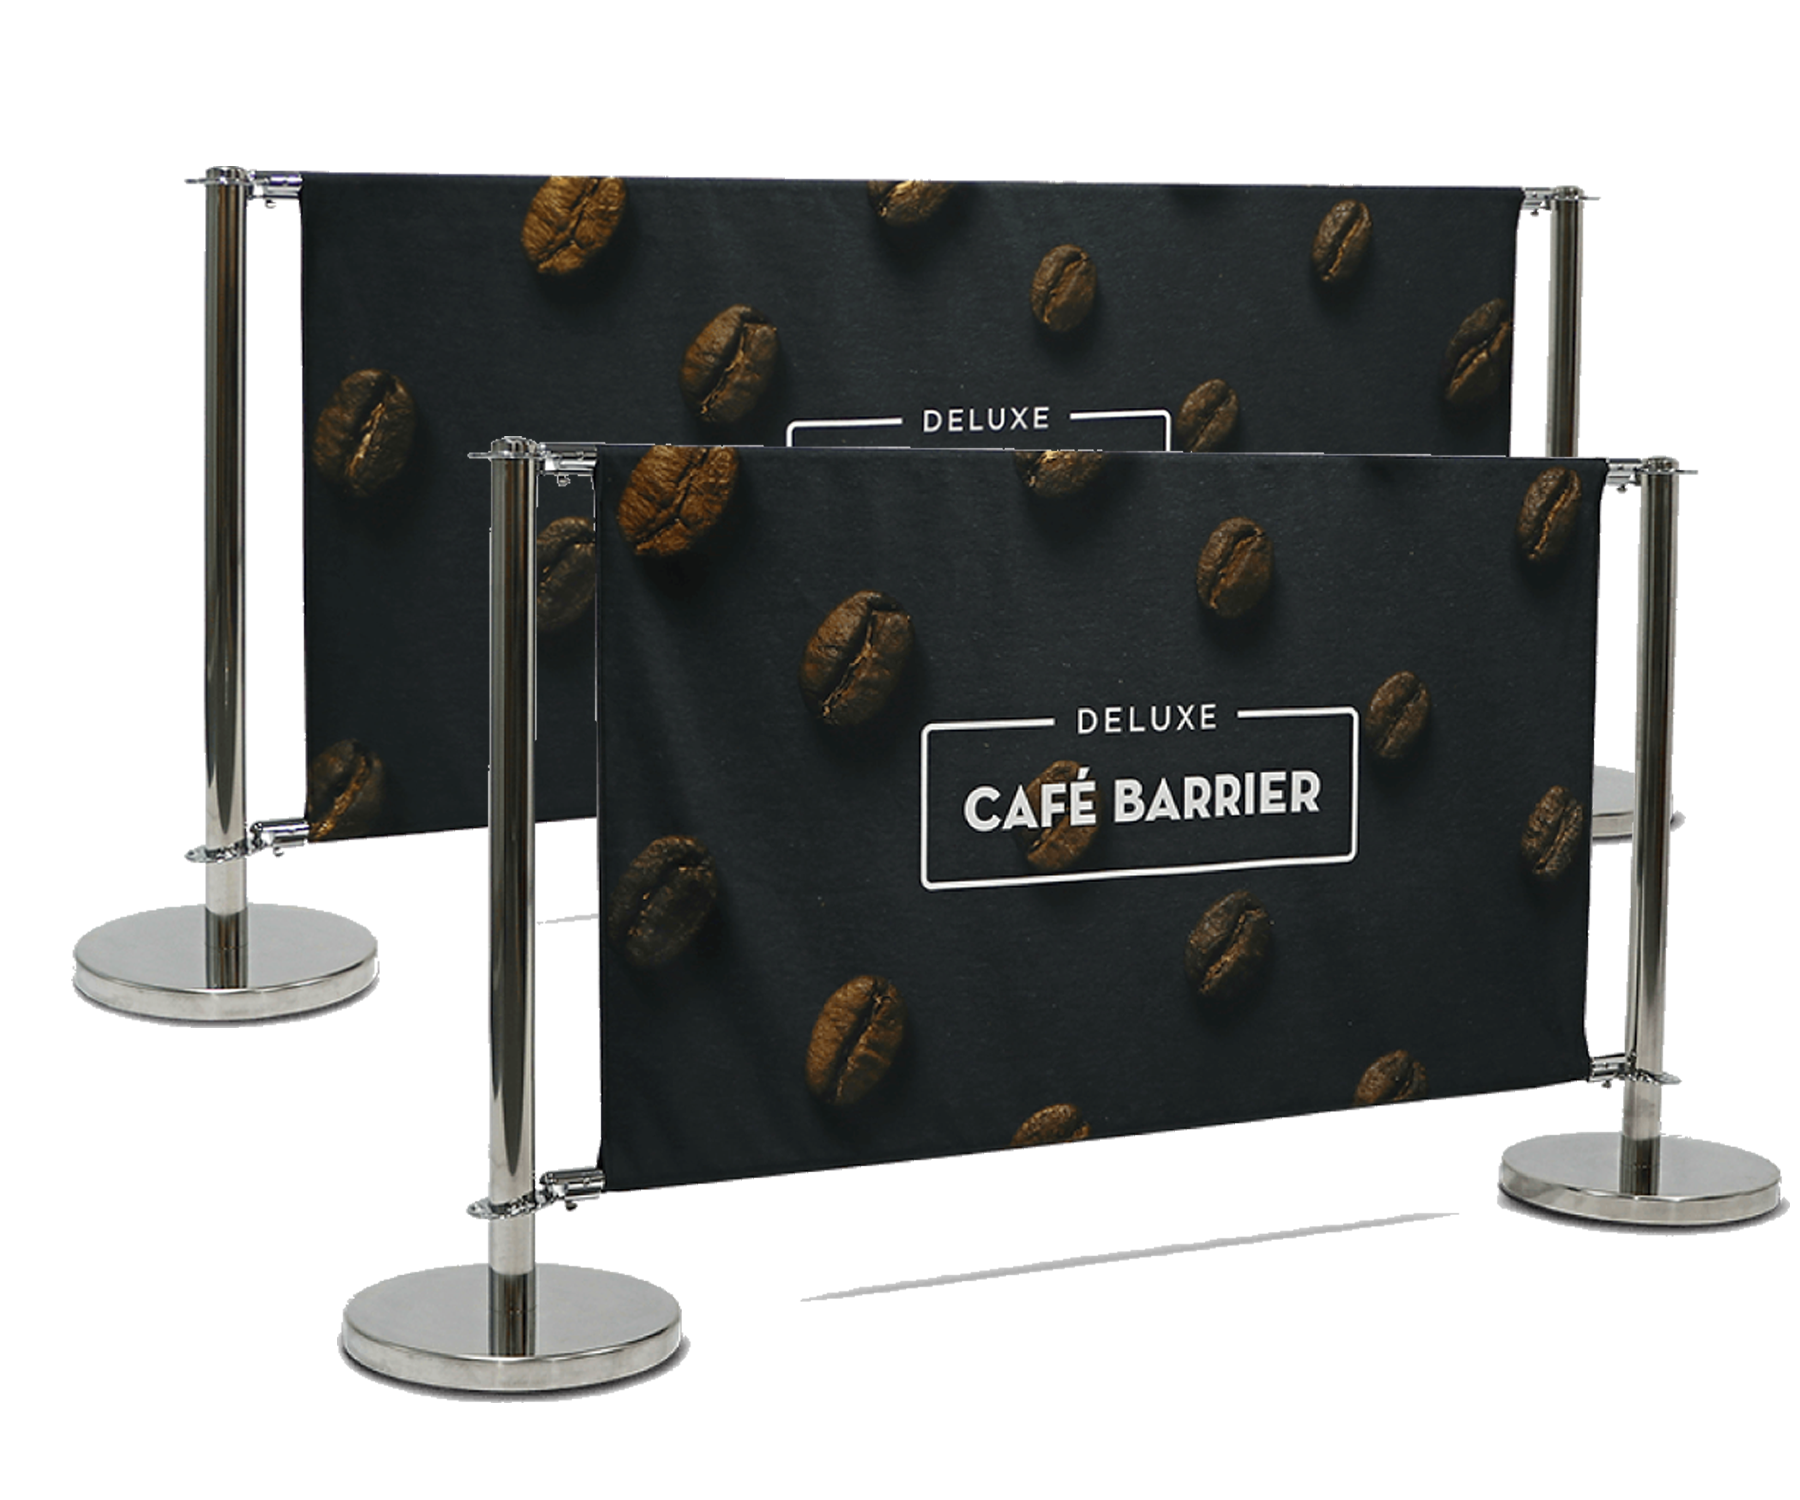 Deluxe Cafe Barrier System